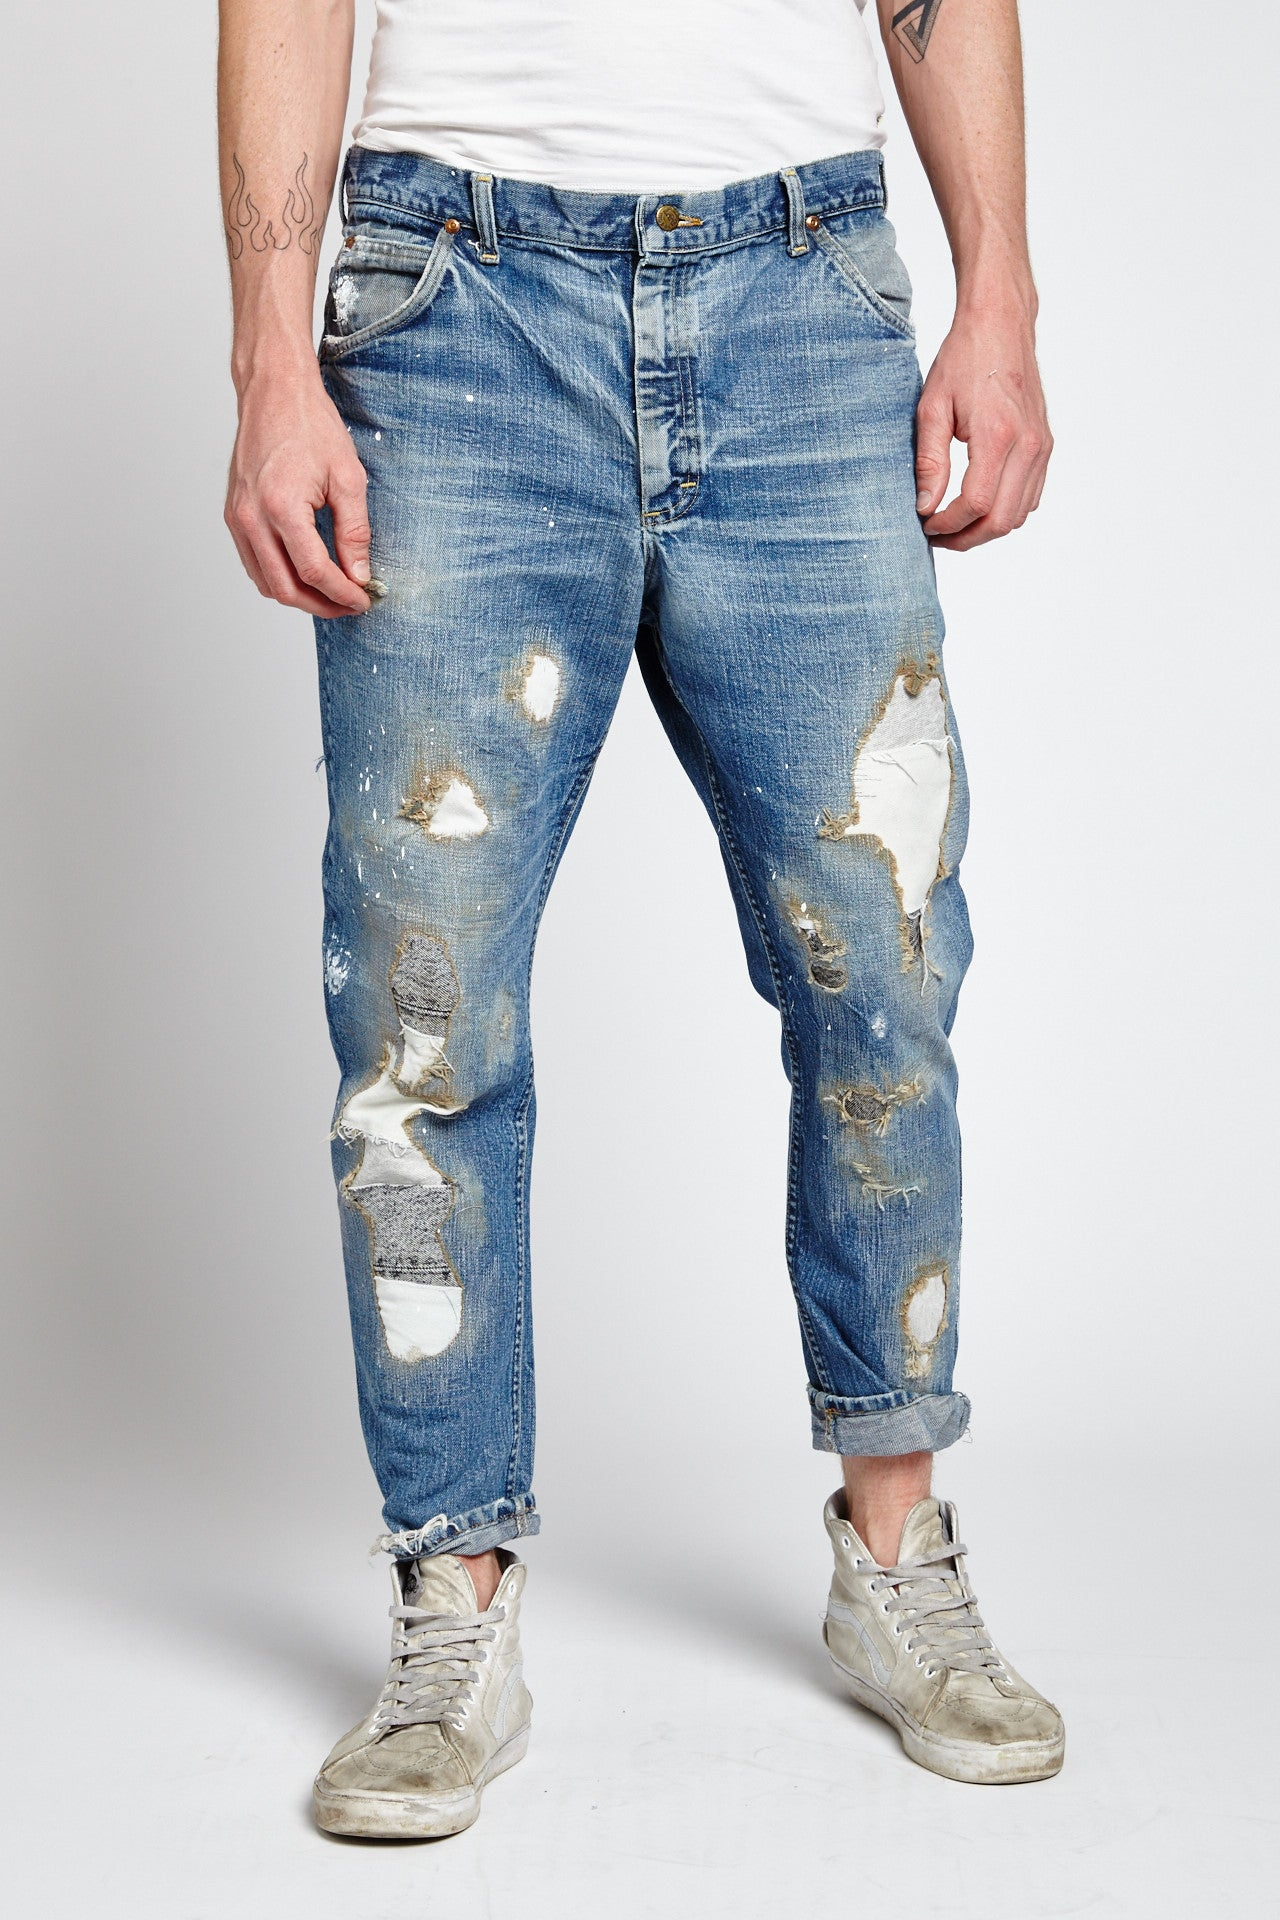 MILLIE RIGHE DISTRESSED COTTON BLUE 40 W JEANS-BOTTOMS-Mundane Official-40-BLUE-Mundane Official